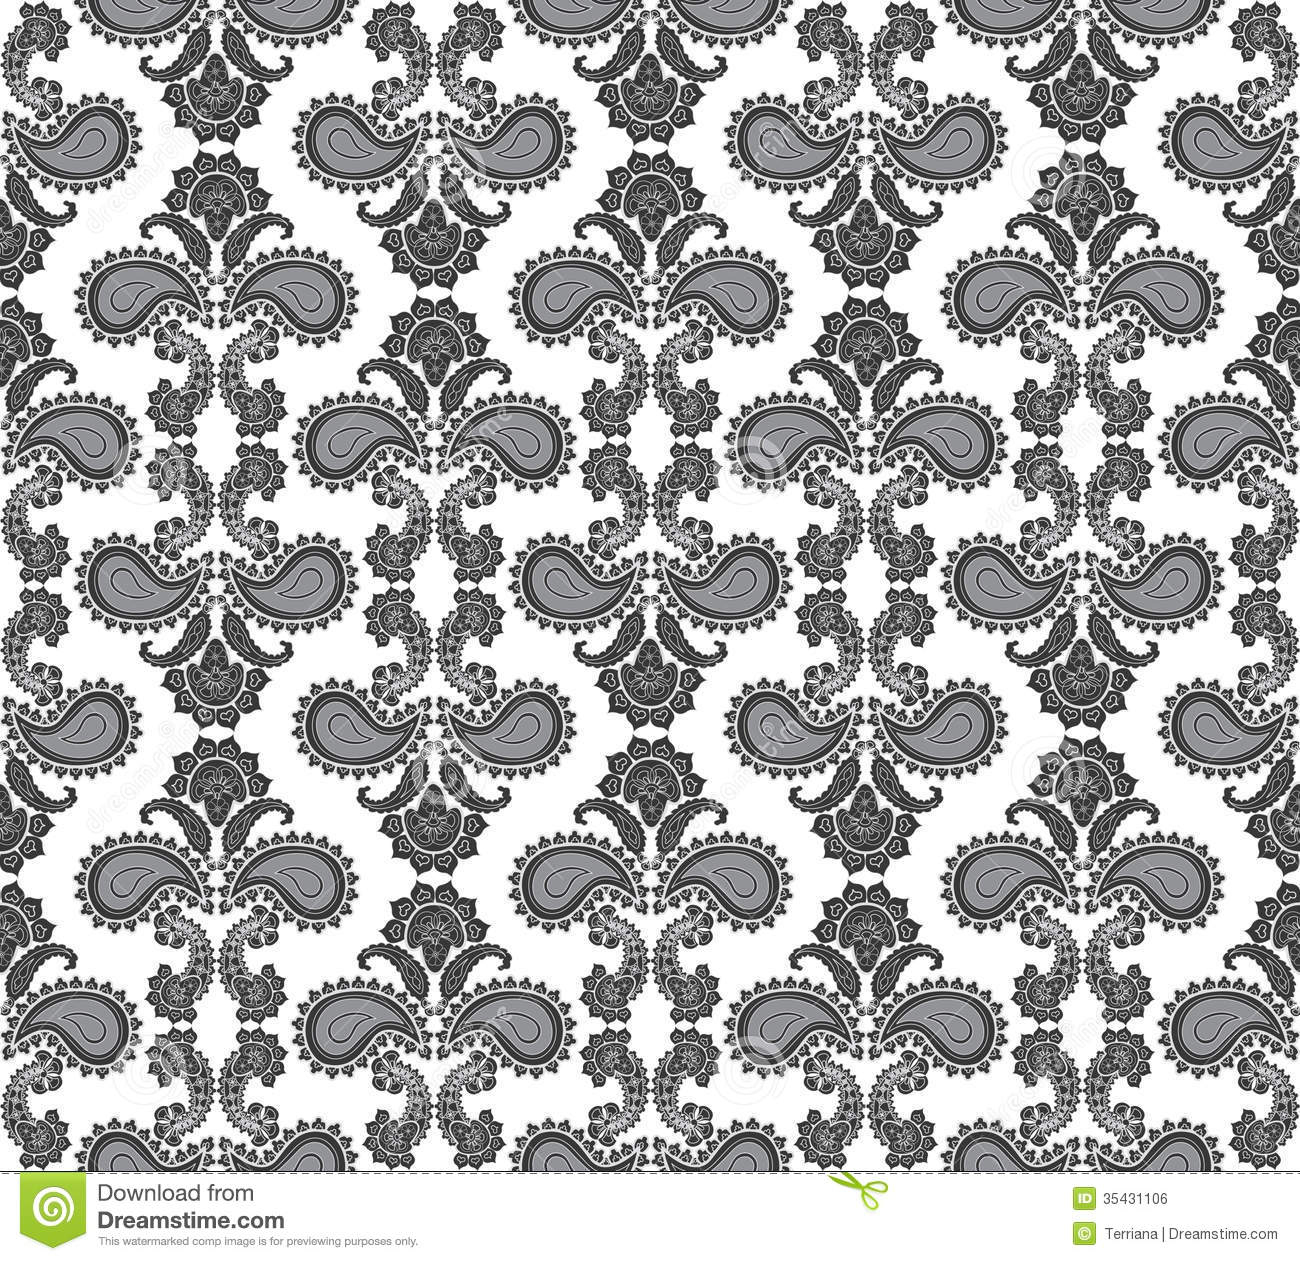 Repeating Pone Background 345978420 in addition Patterns as well Wire Grate Pattern Ceiling Tile further Royalty Free Stock Image Floral Seamless Background Abstract Black White Floral Geometric Seamless Texture Vector Textile Tile Pattern Light Image35431106 further St ed Concrete Patterns. on fan tile pattern